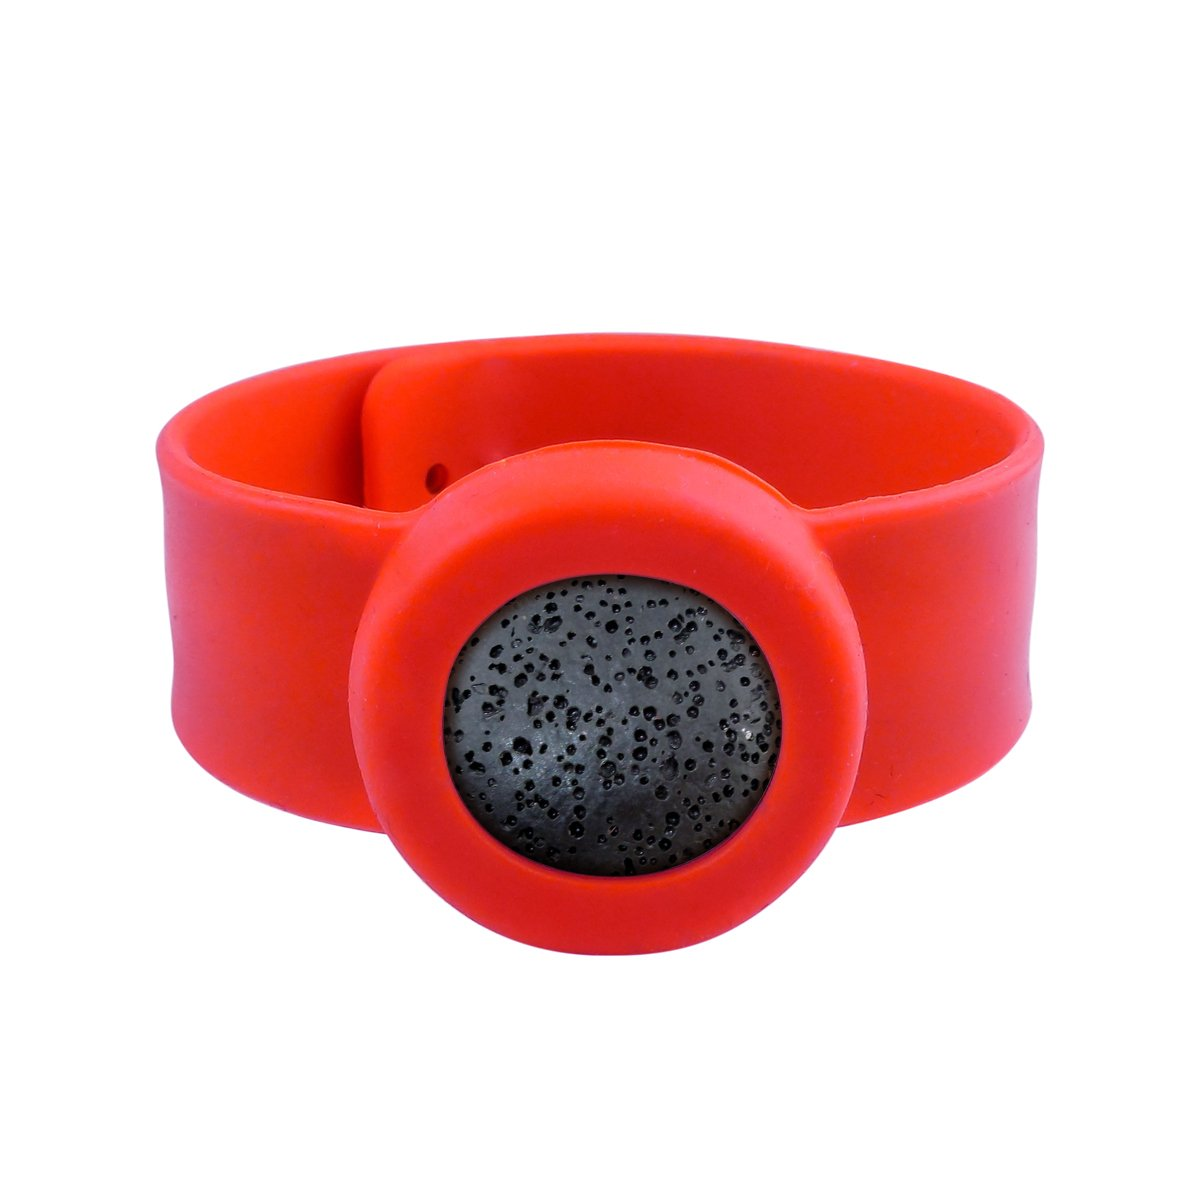 NewStar Lava Stone Essential Oil Slap Bracelet Silicone Rubber Birthday Party Favors Gifts